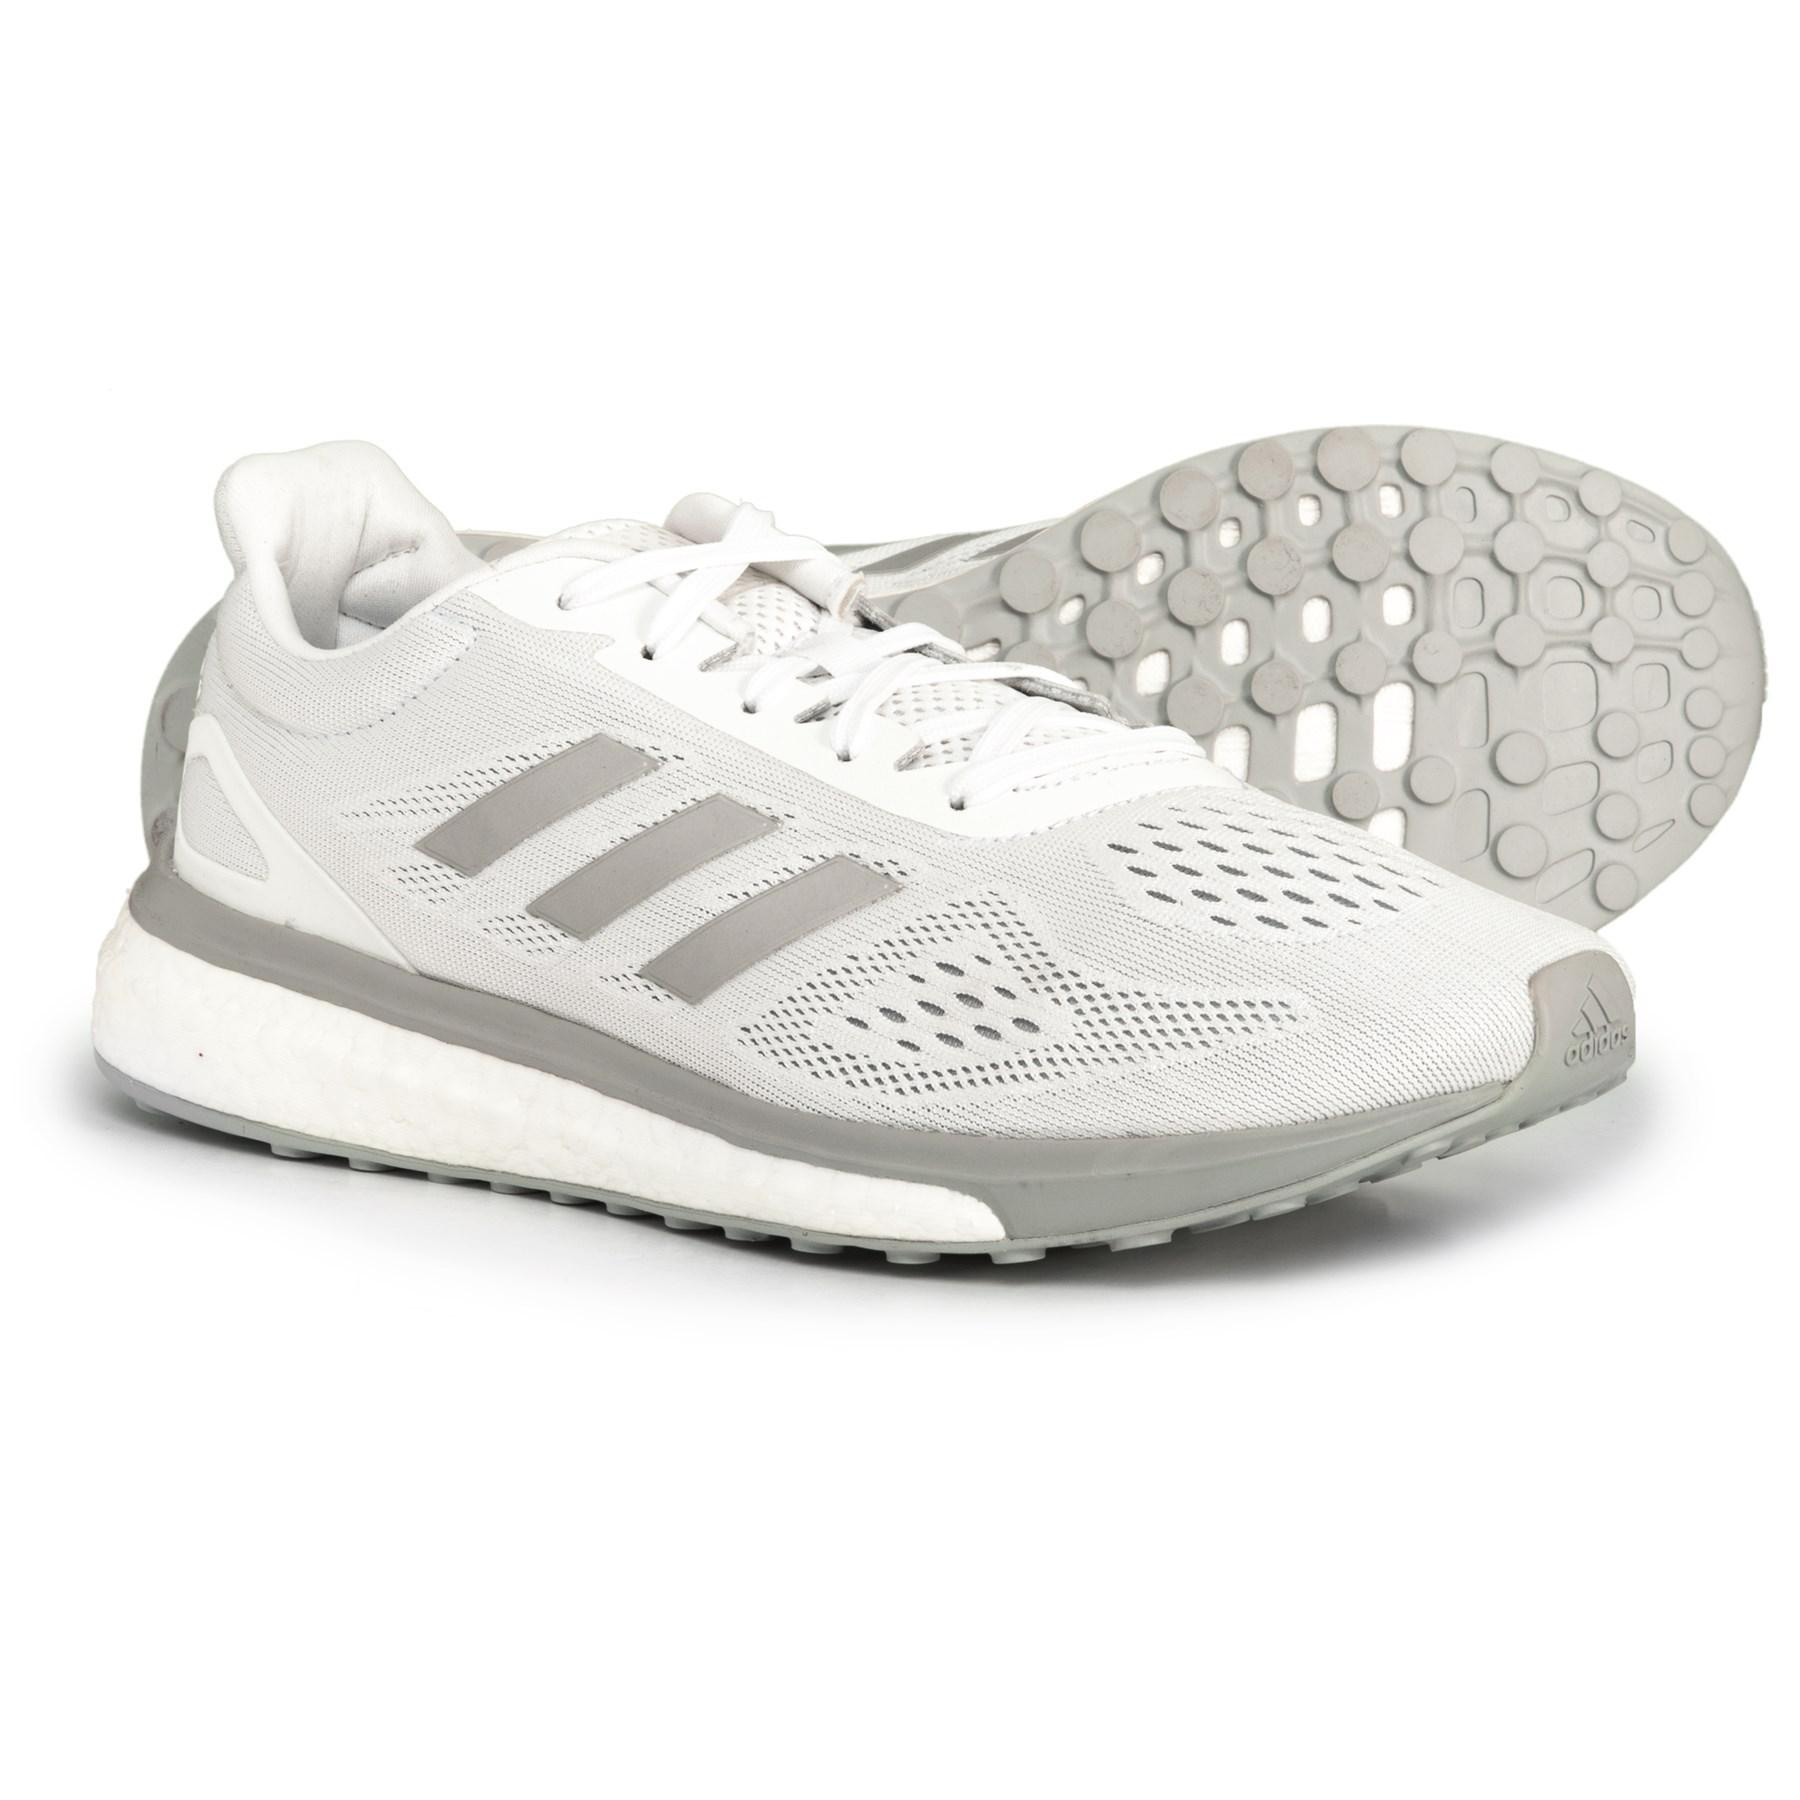 c7dfc4d4300e13 Lyst - Adidas Response Limited Running Shoes (for Women) in Metallic